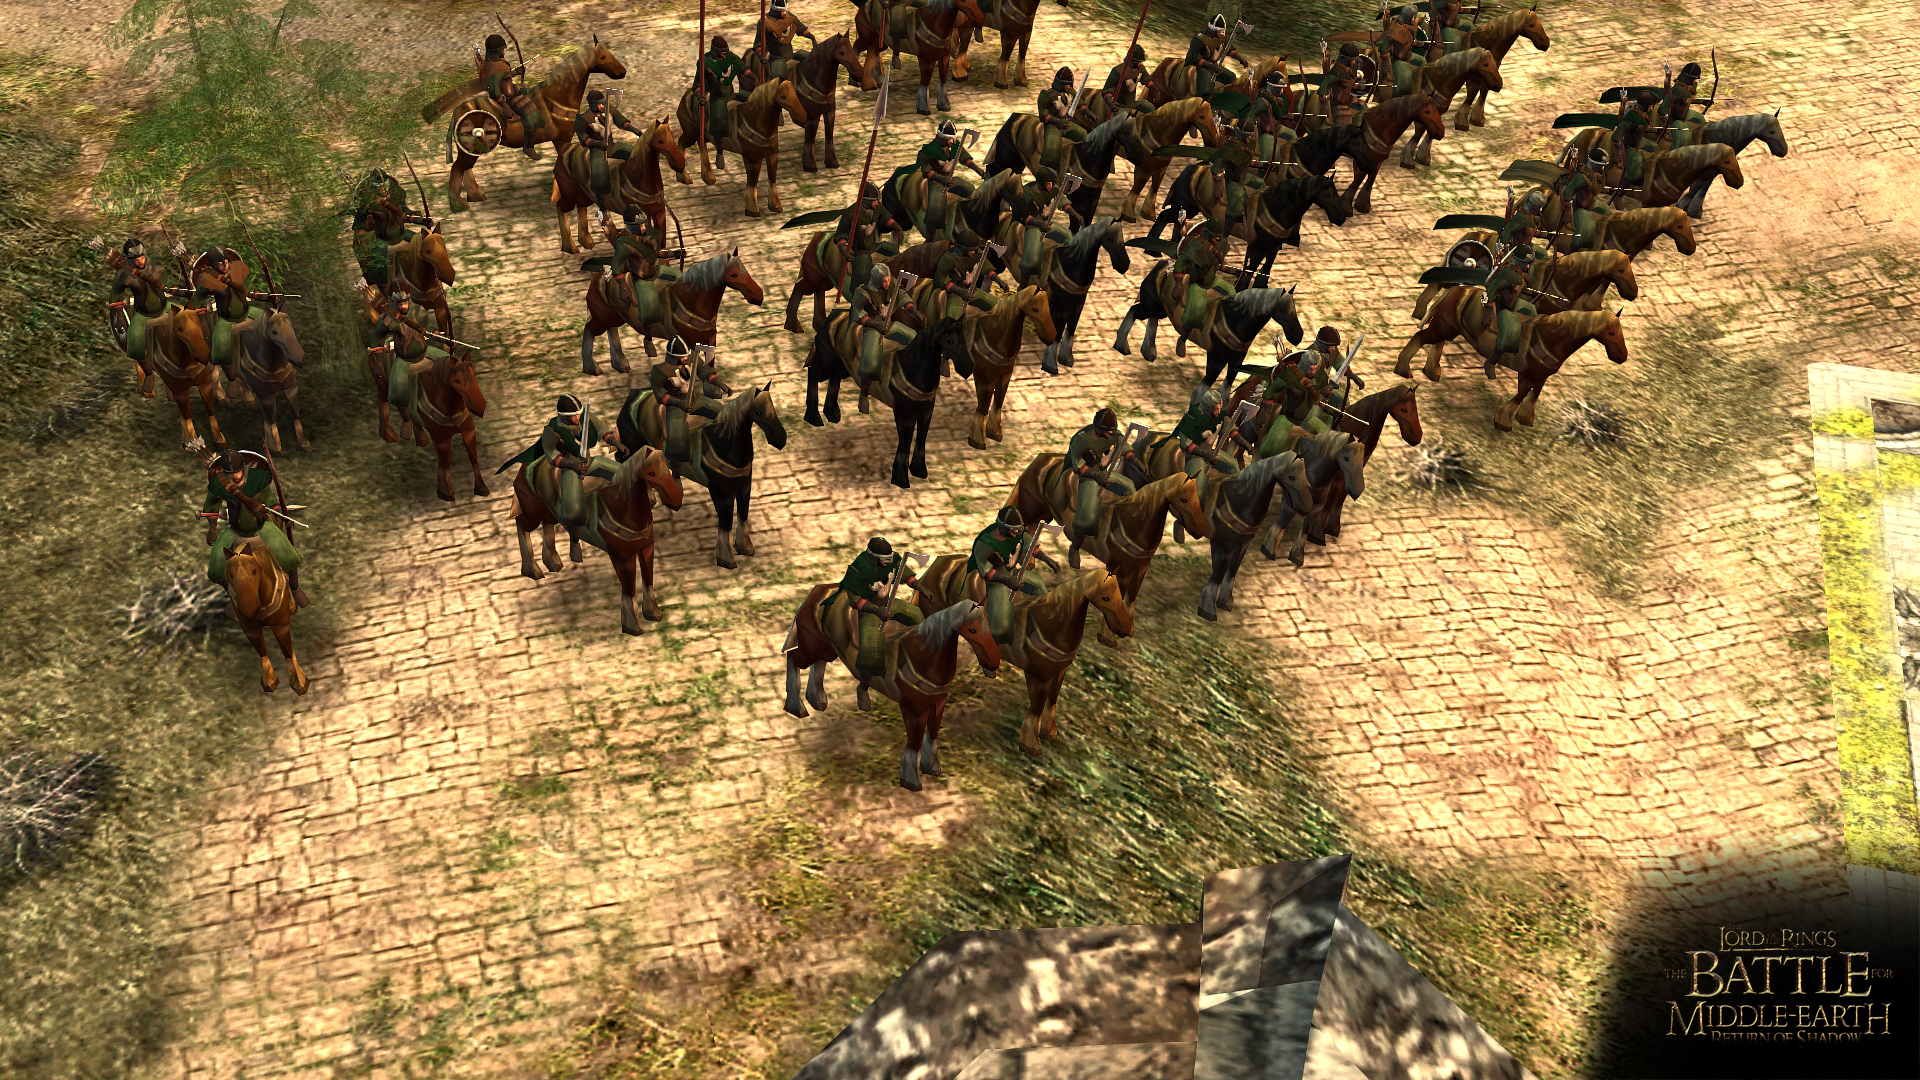 return of shadow mod for battle for middle earth mod dbIs There A Repair Button In The Battle For Middle Earth #11